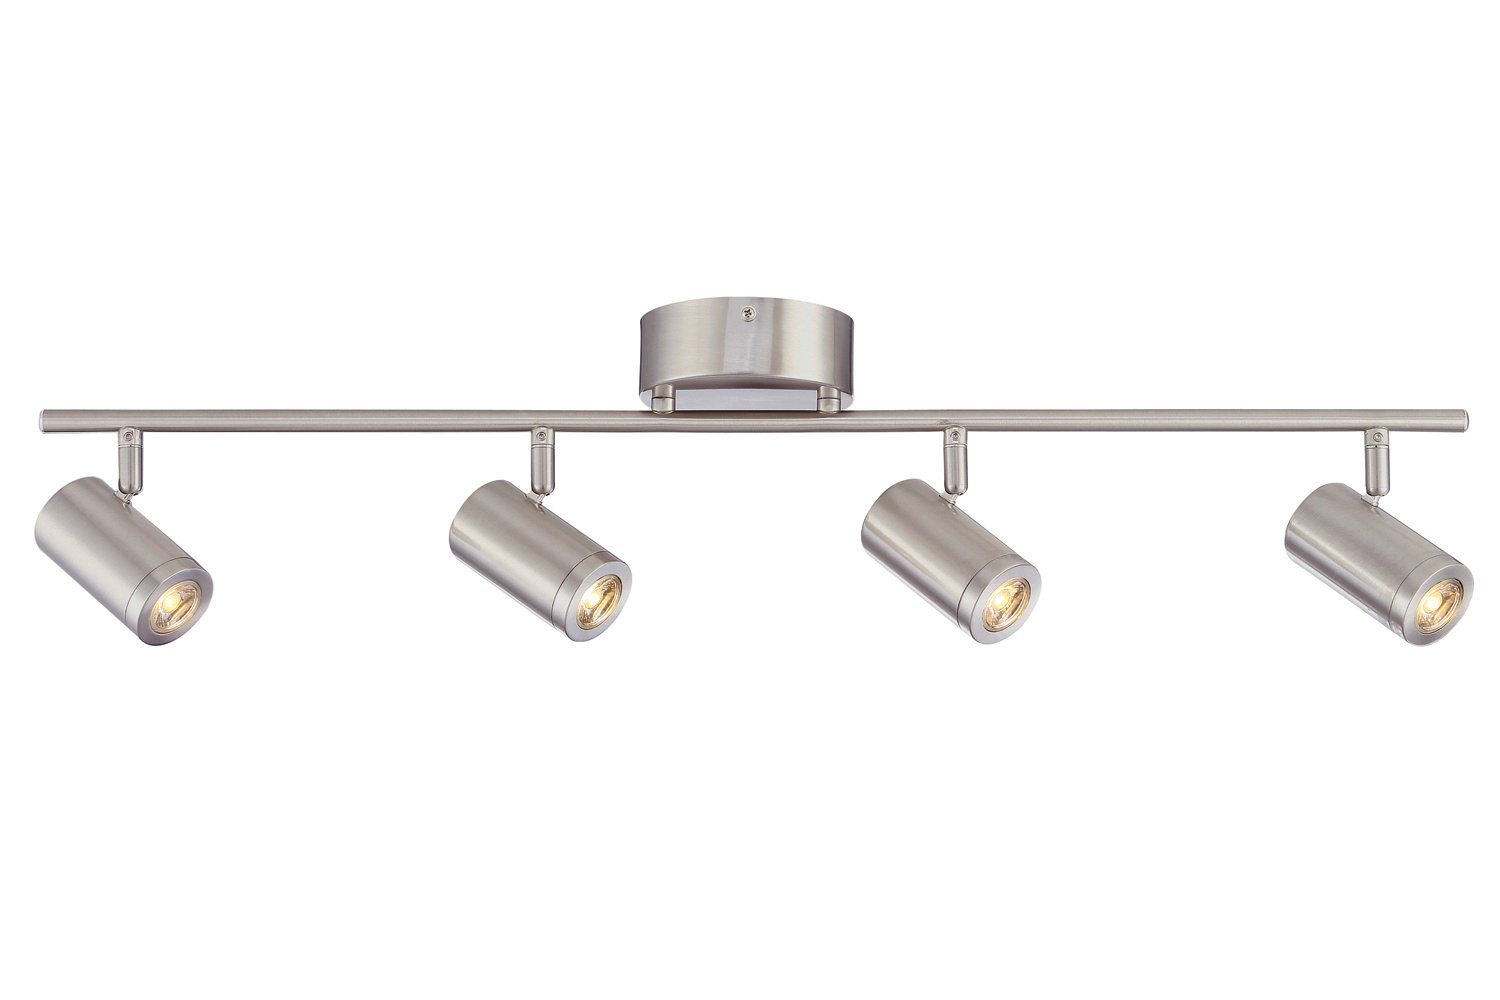 sale retailer ada21 059cb Designers Fountain EVT101227A-35 Kit with 4 Led Track Lights 1920 Lumens,  Nickel